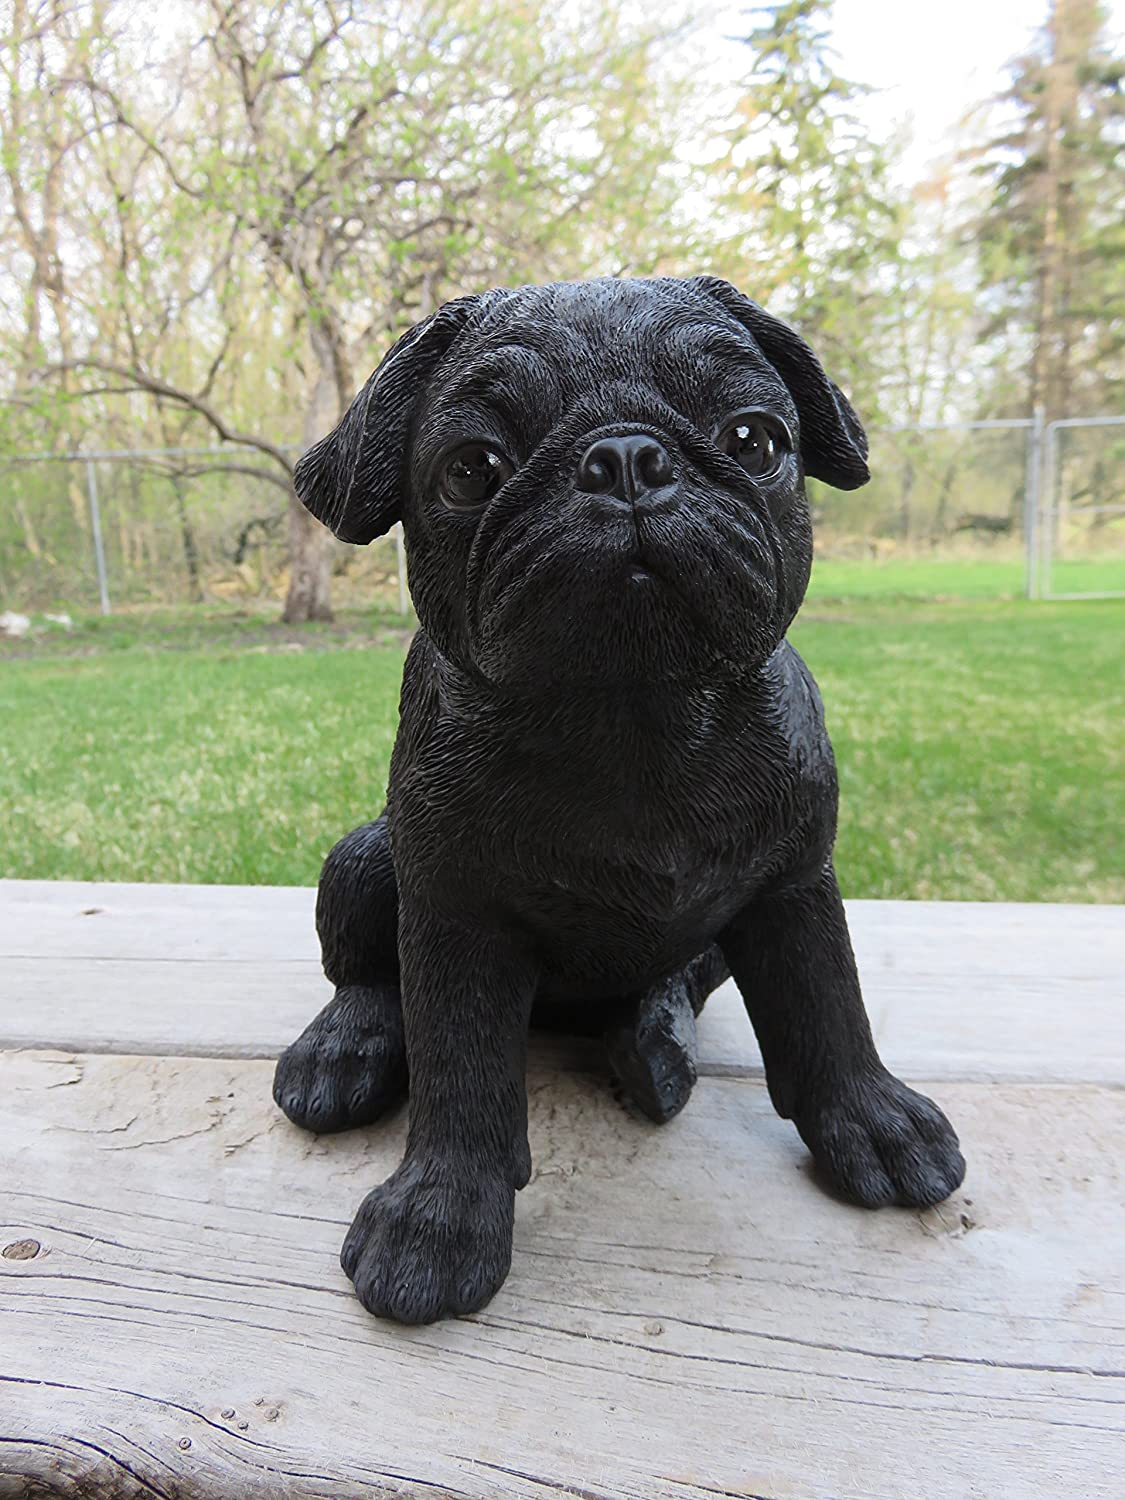 ChosenTreasures4You Black Pug Puppy Dog Figurine Sitting